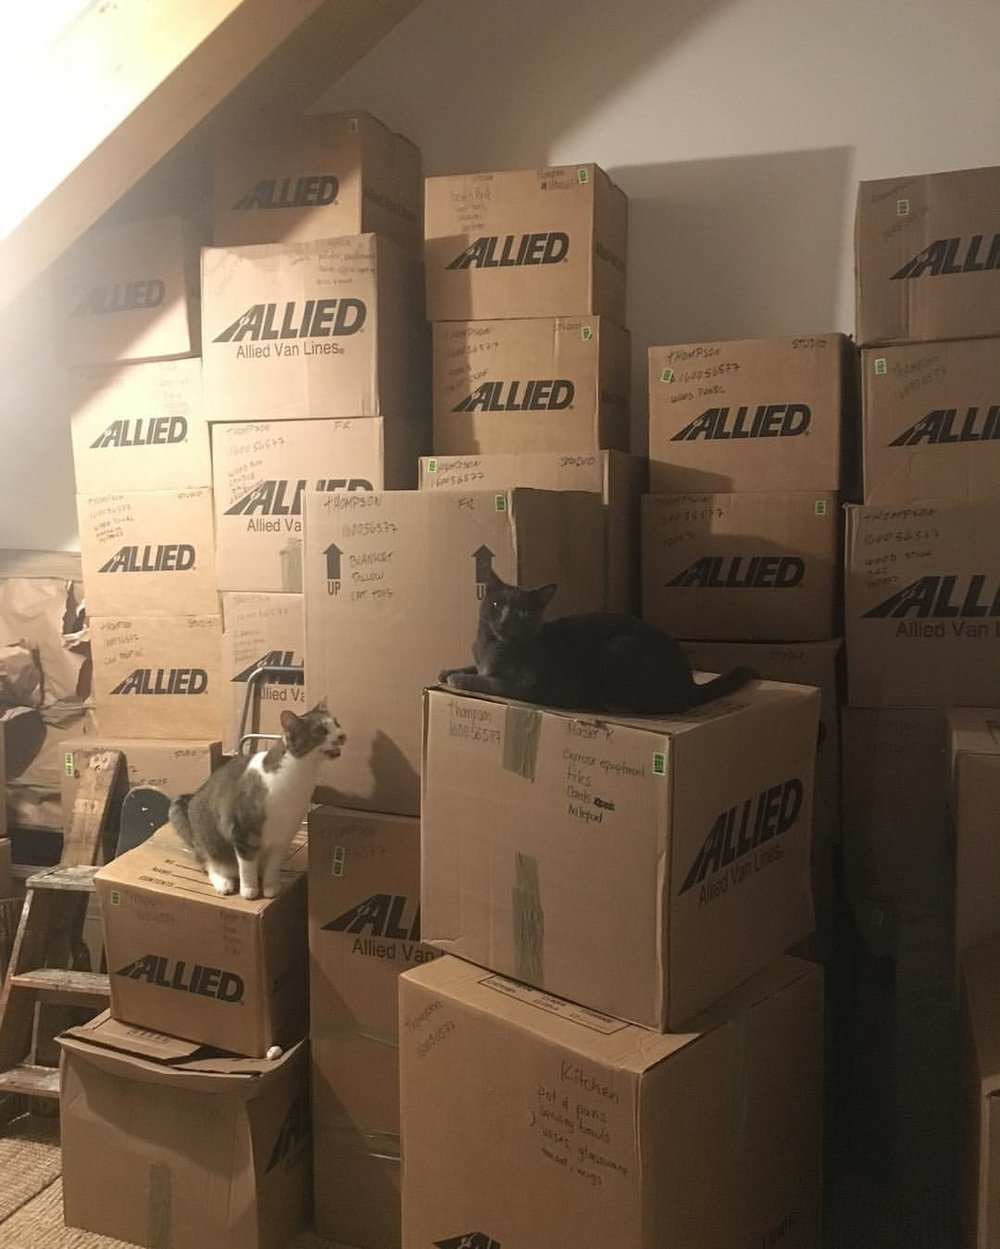 Oh, the chaos of moving! // ©2016 Kelli Thompson